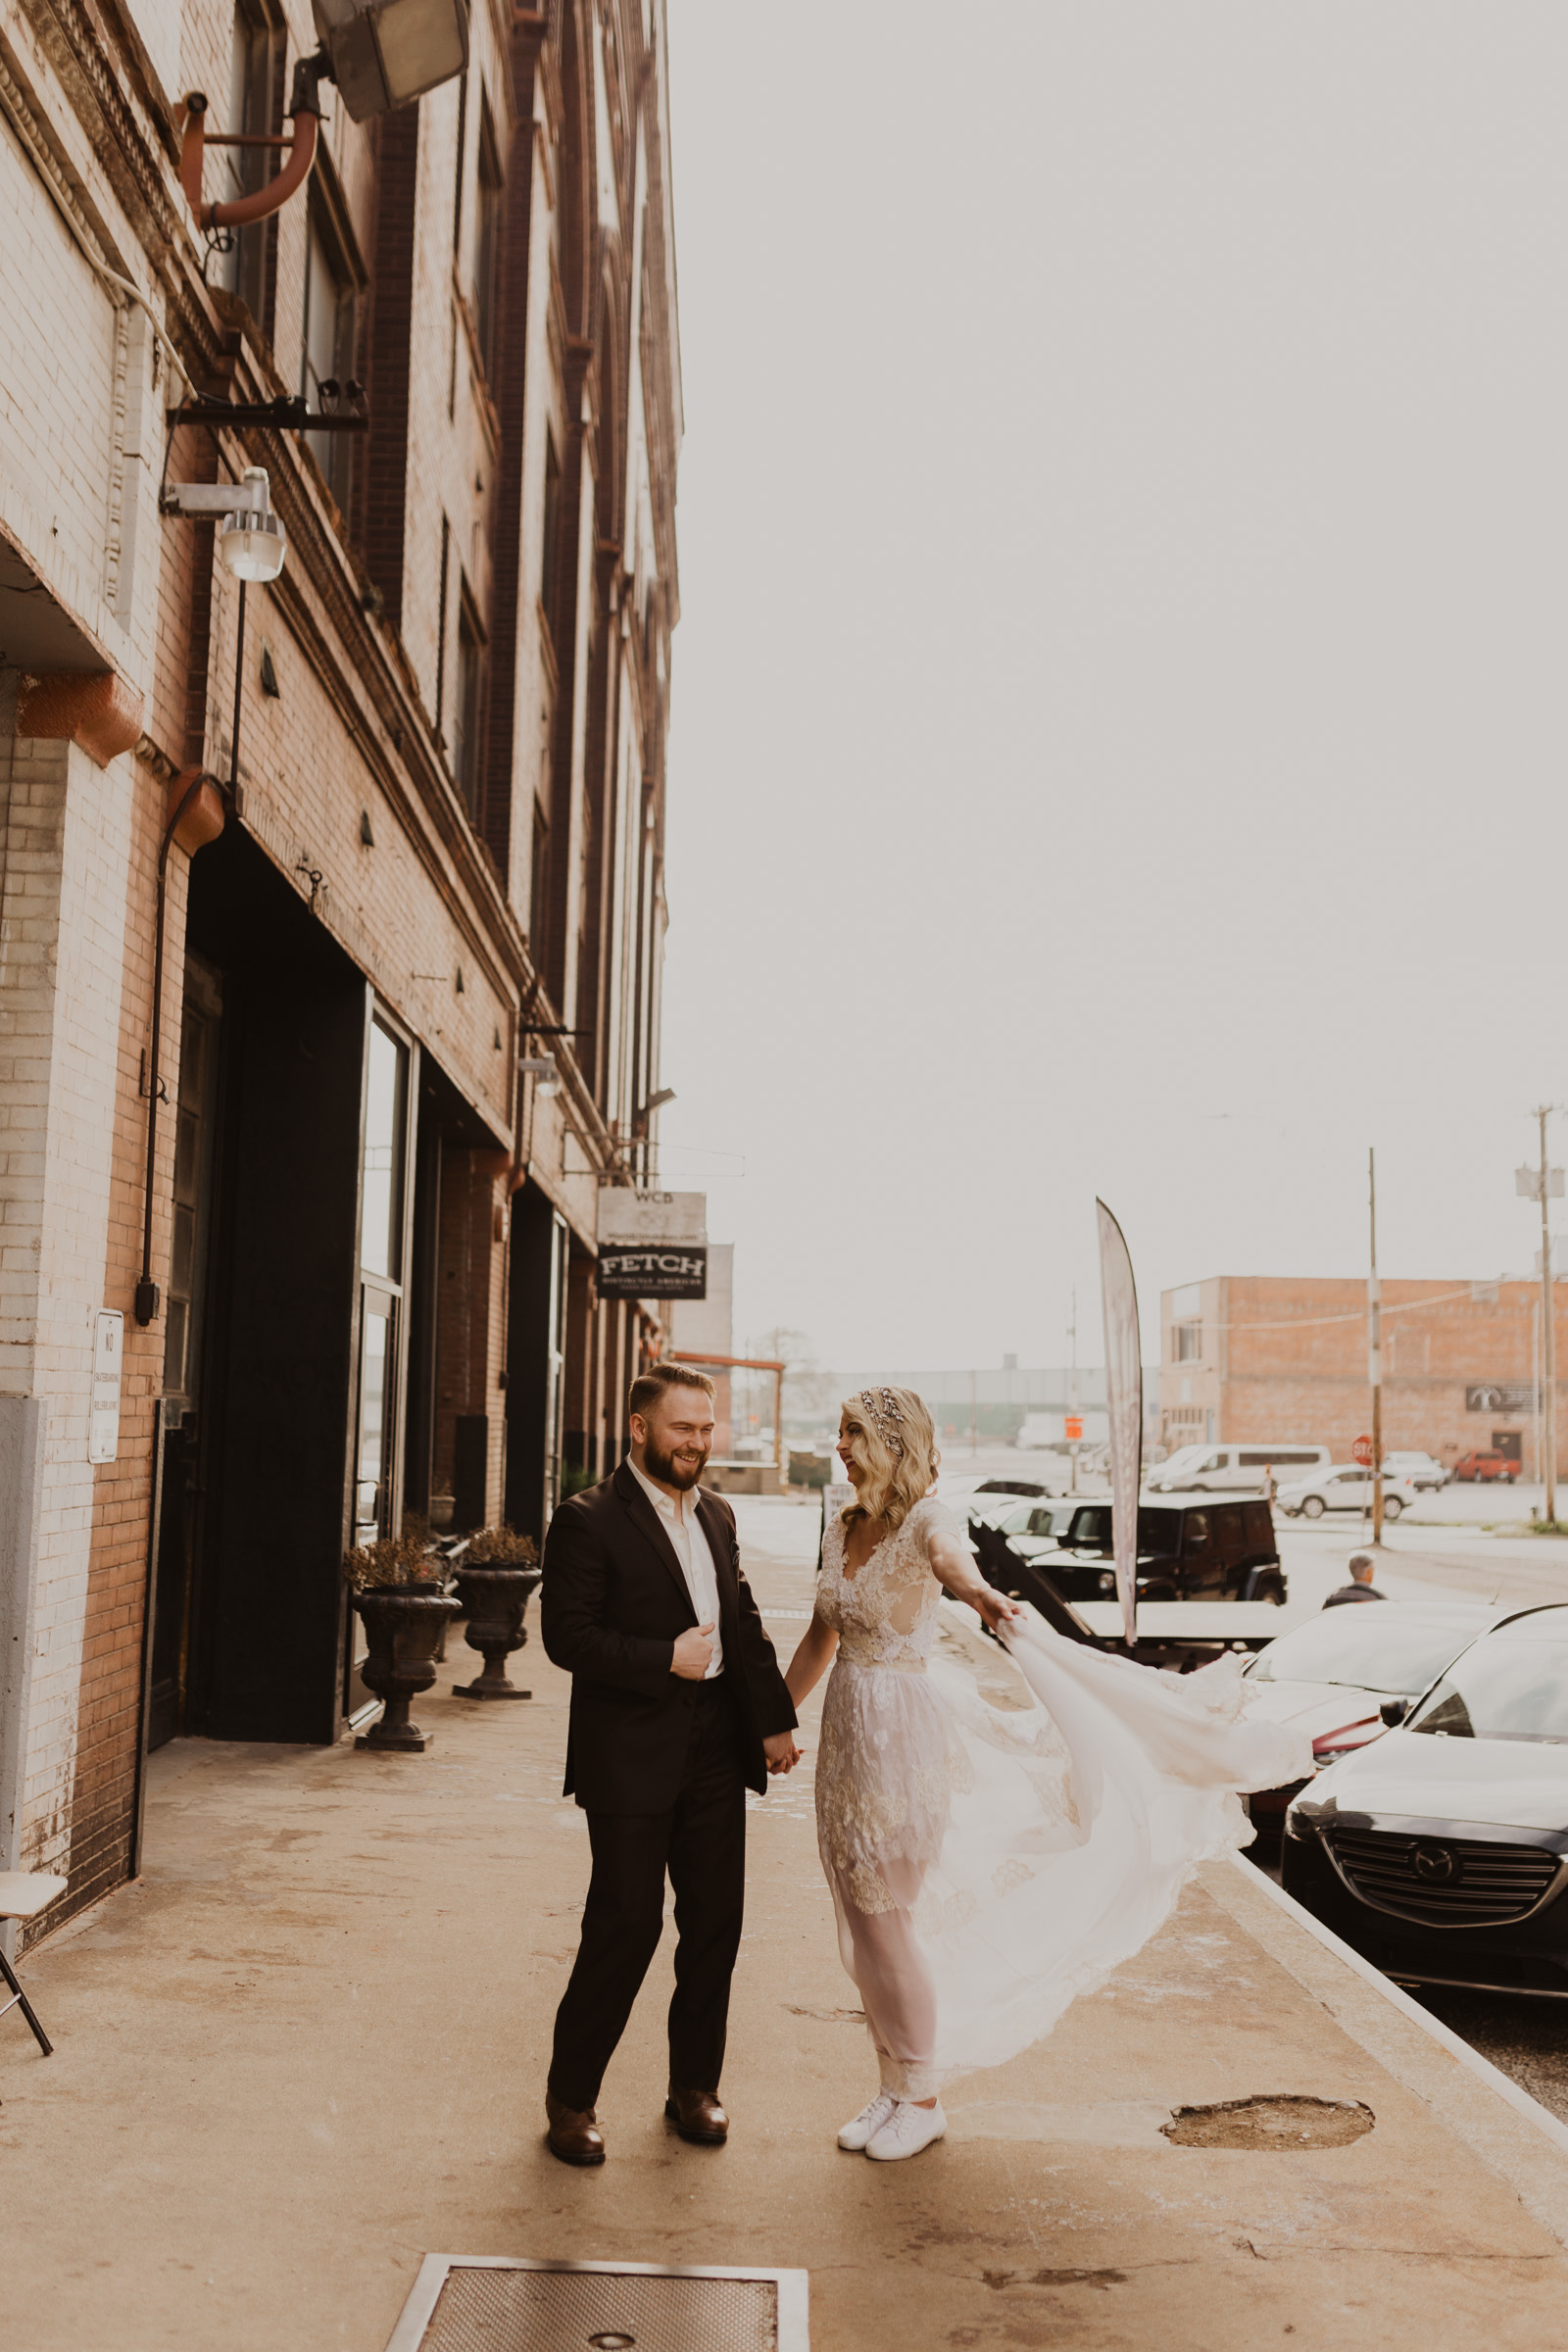 alyssa barletter photography styled shoot wedding inspiration kansas city west bottoms photographer motorcycle edgy intimate-23.jpg